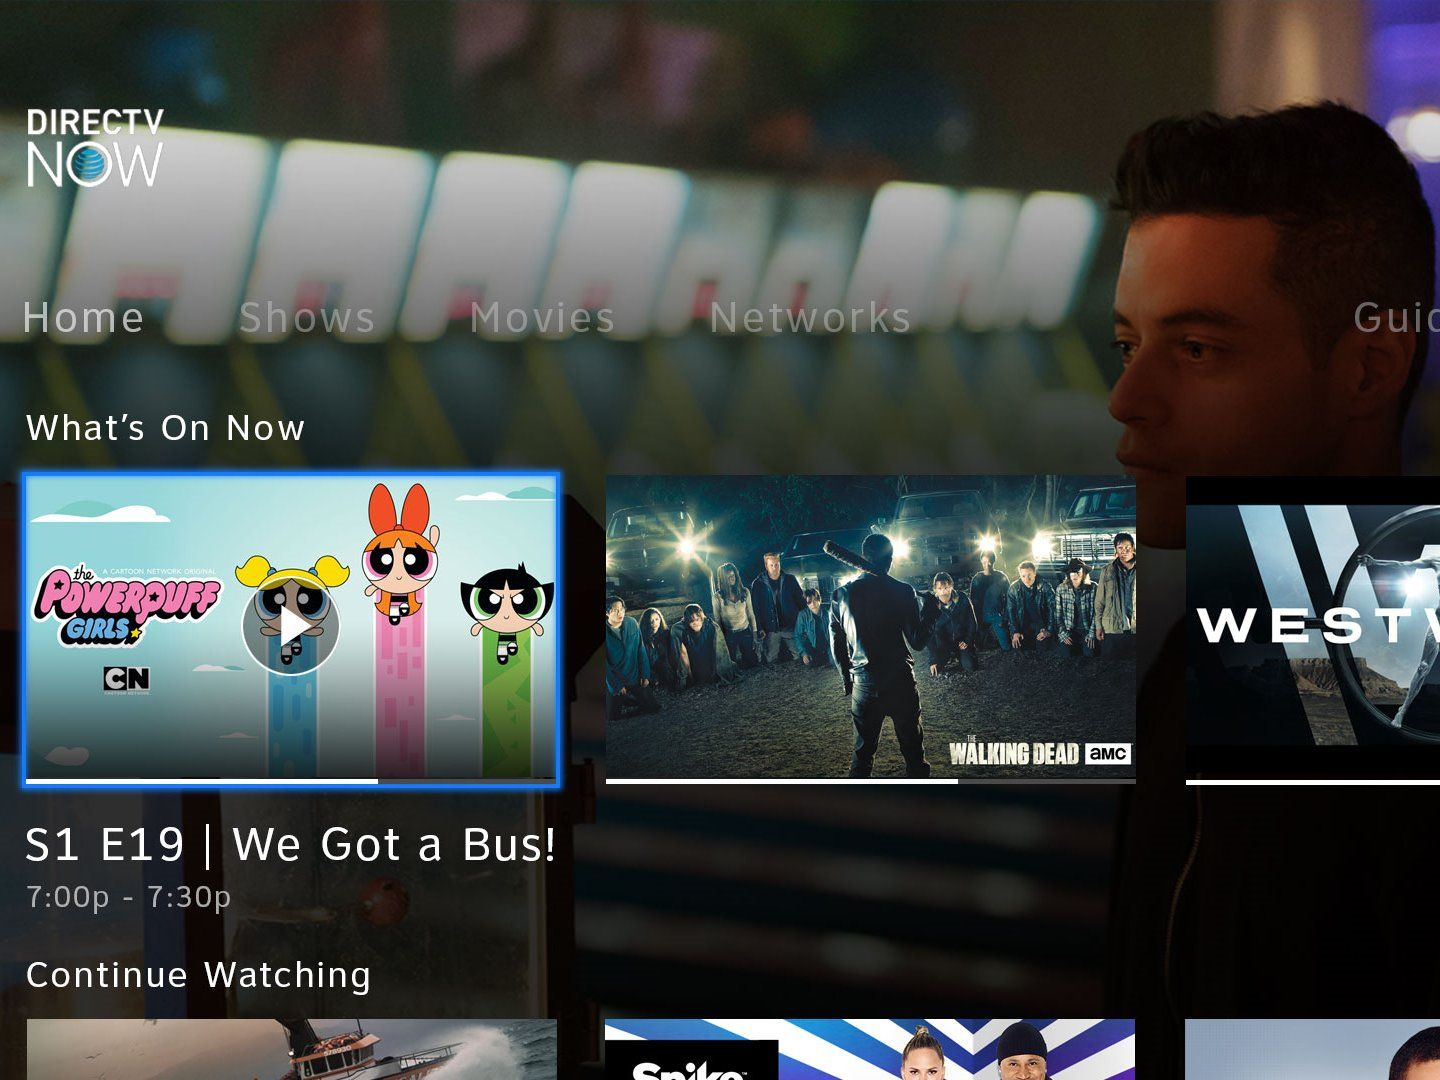 DirecTV Now problems, bugs Tv services, Tv app, Digital tv